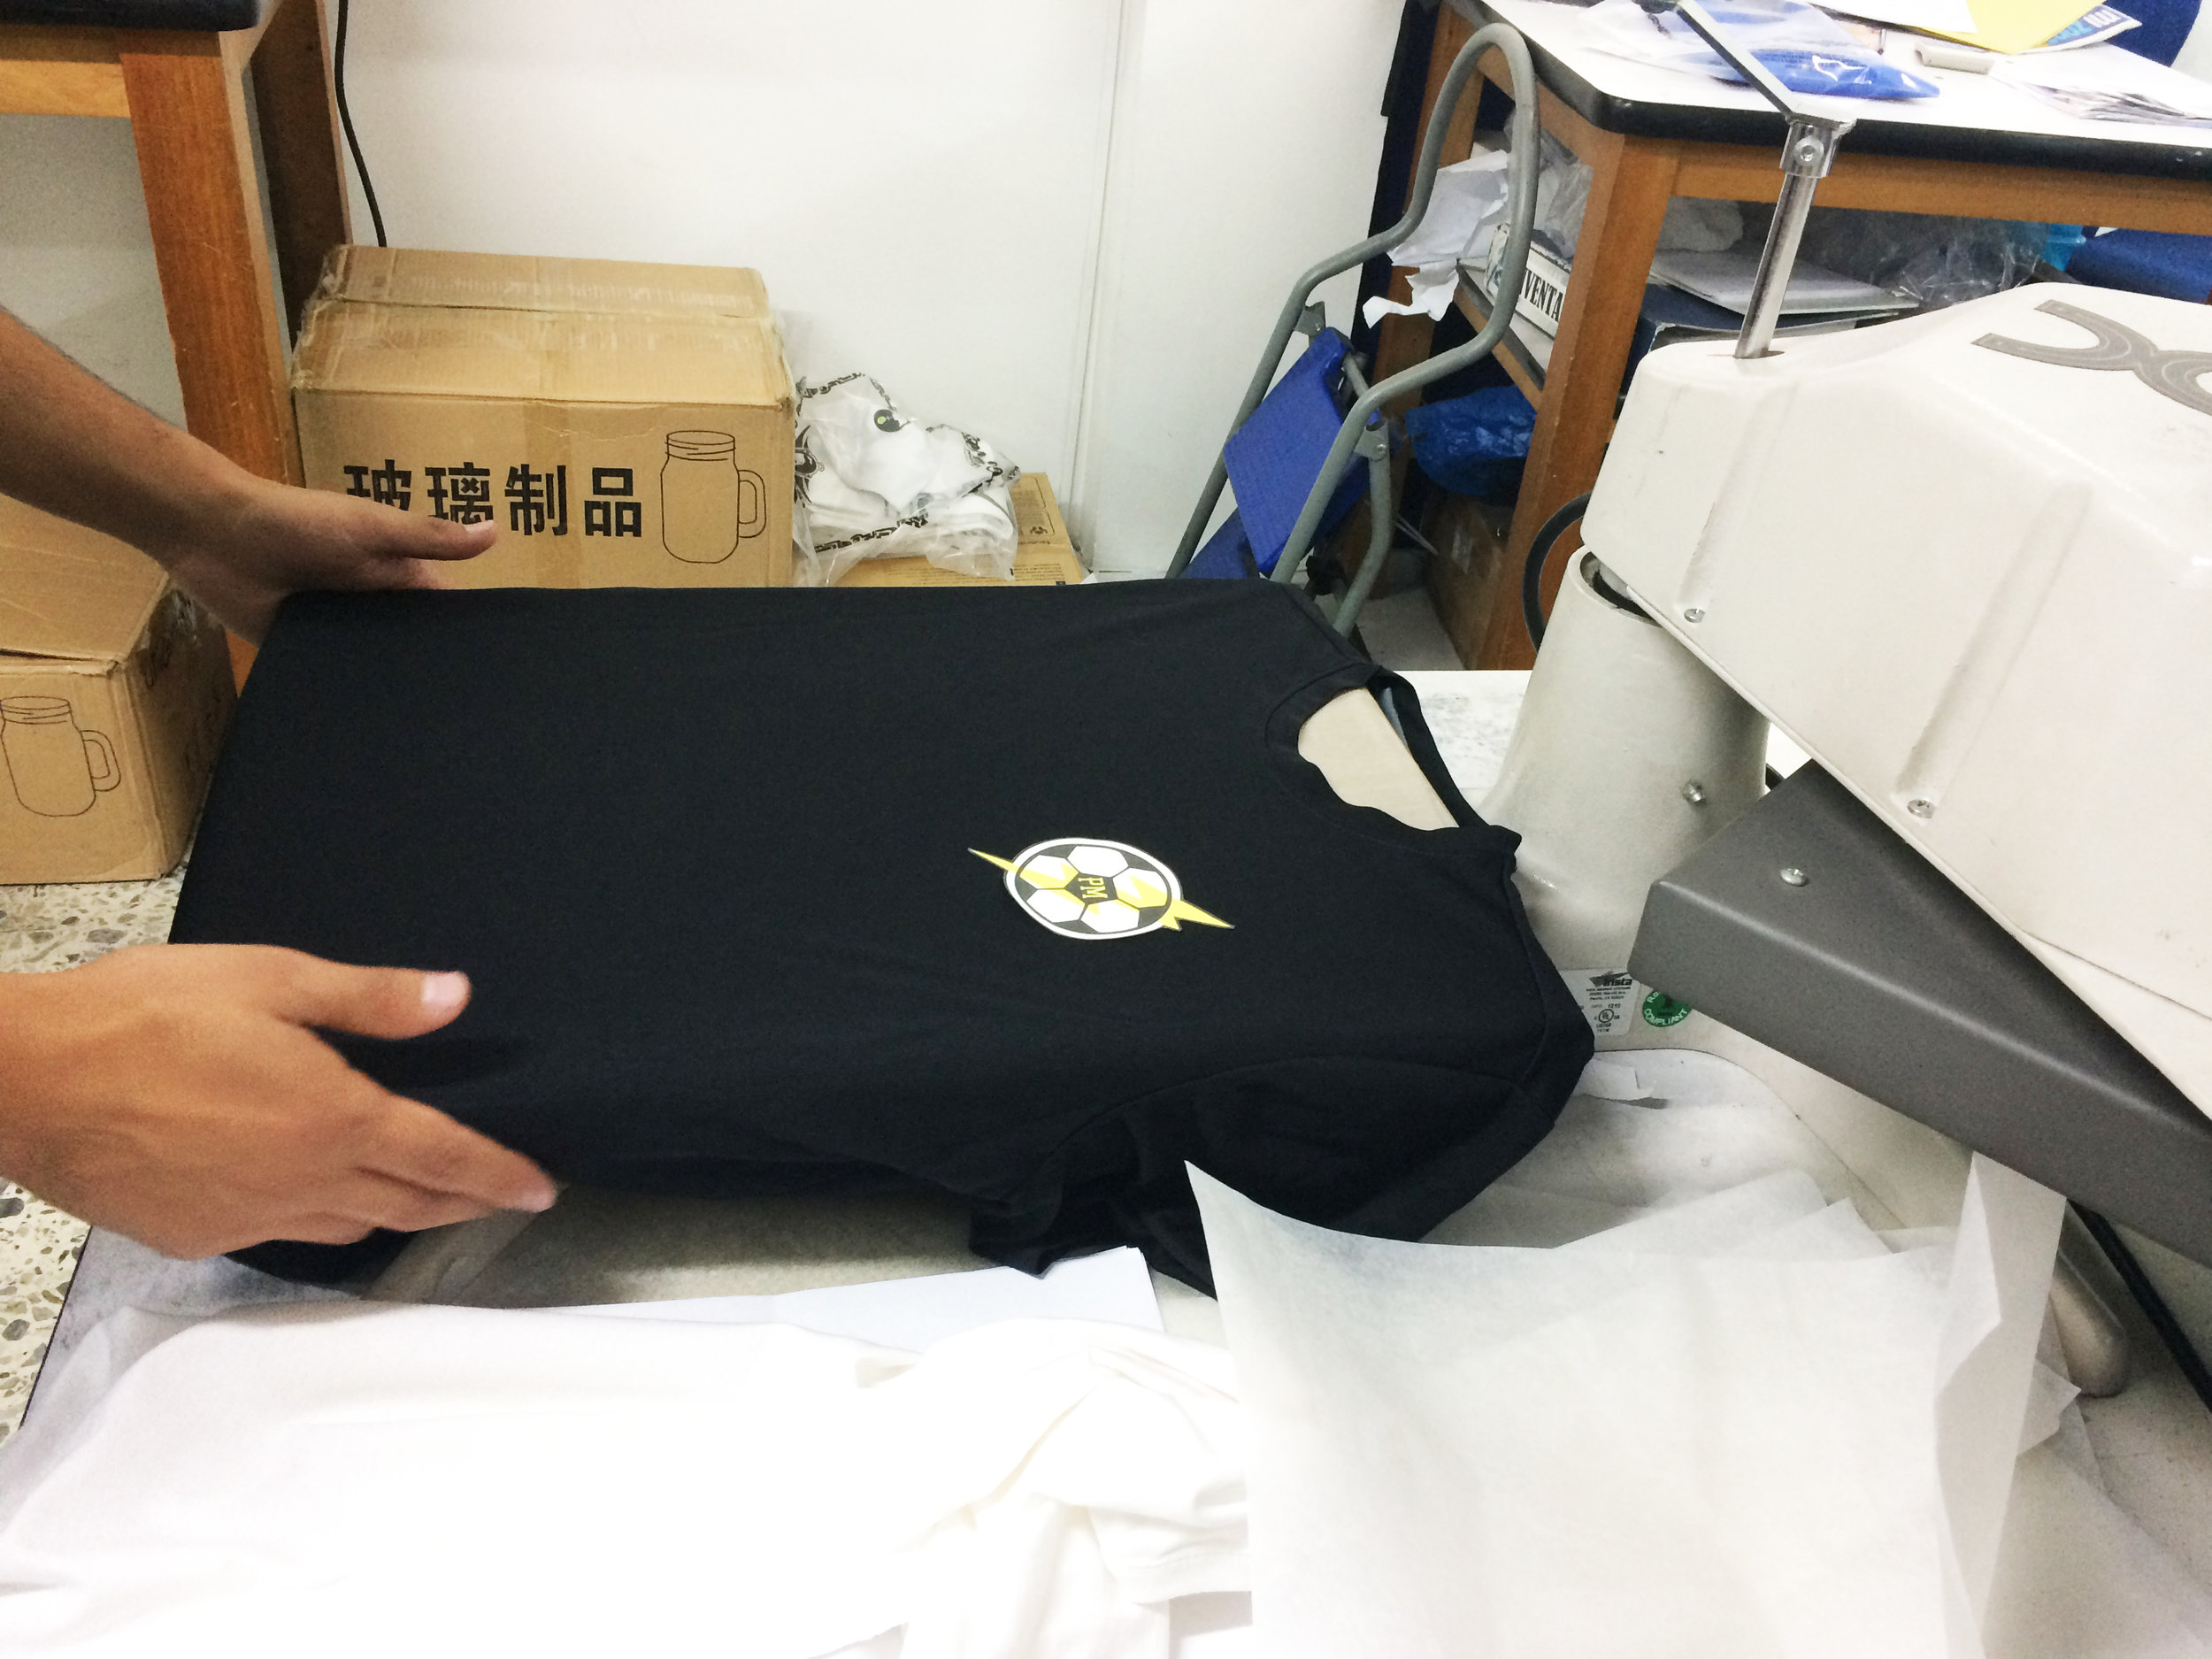 ParkerMather FC-T-Shirt-Production.jpg